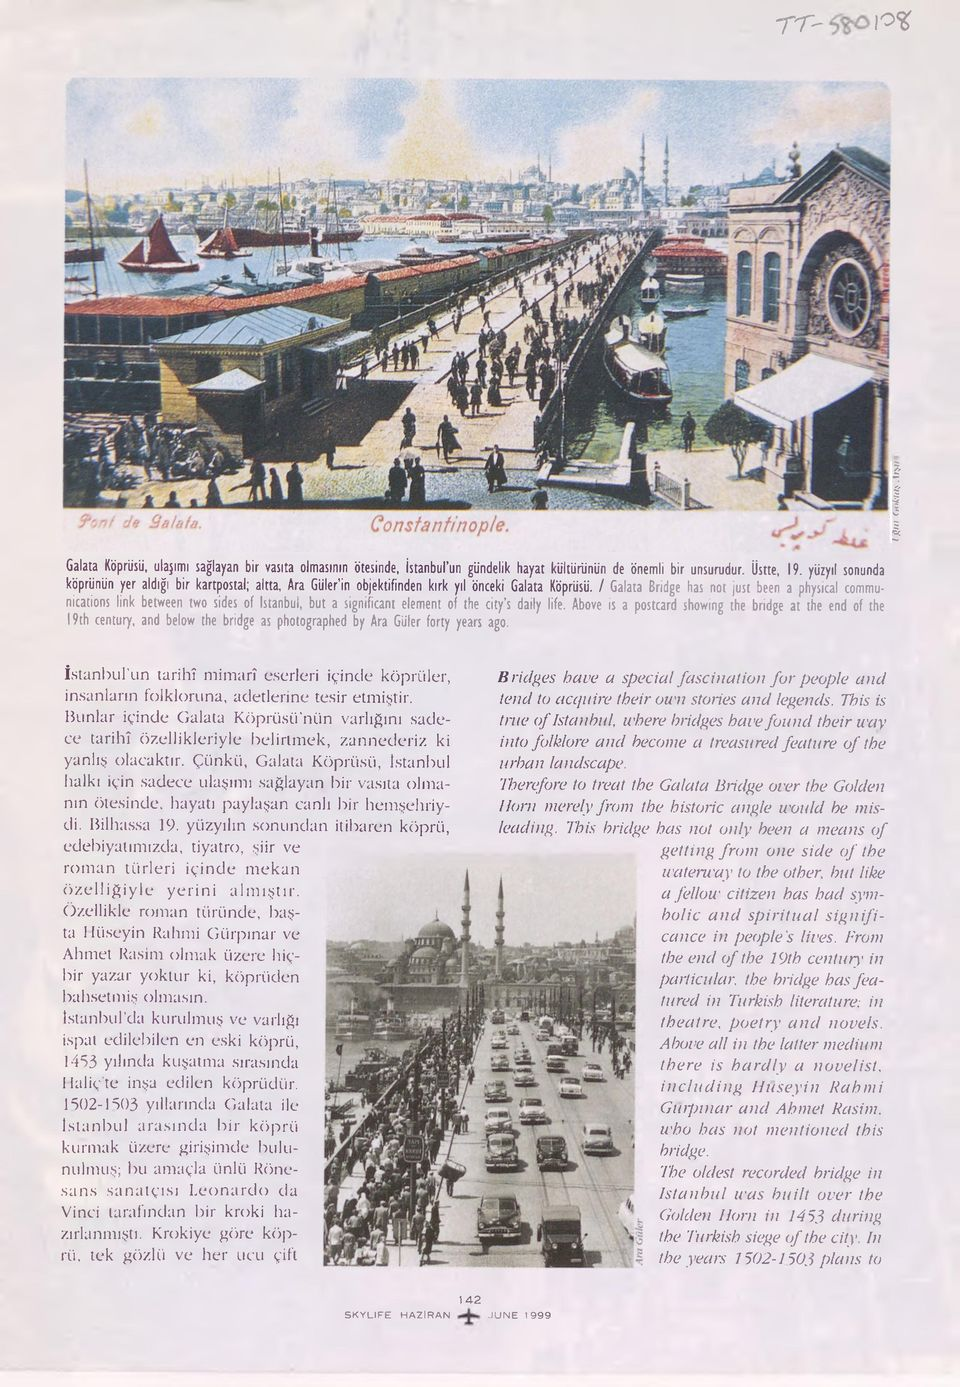 / Galata Bridge has not just been a physical communications link between two sides of Istanbul, but a significant element of the city s daily life.